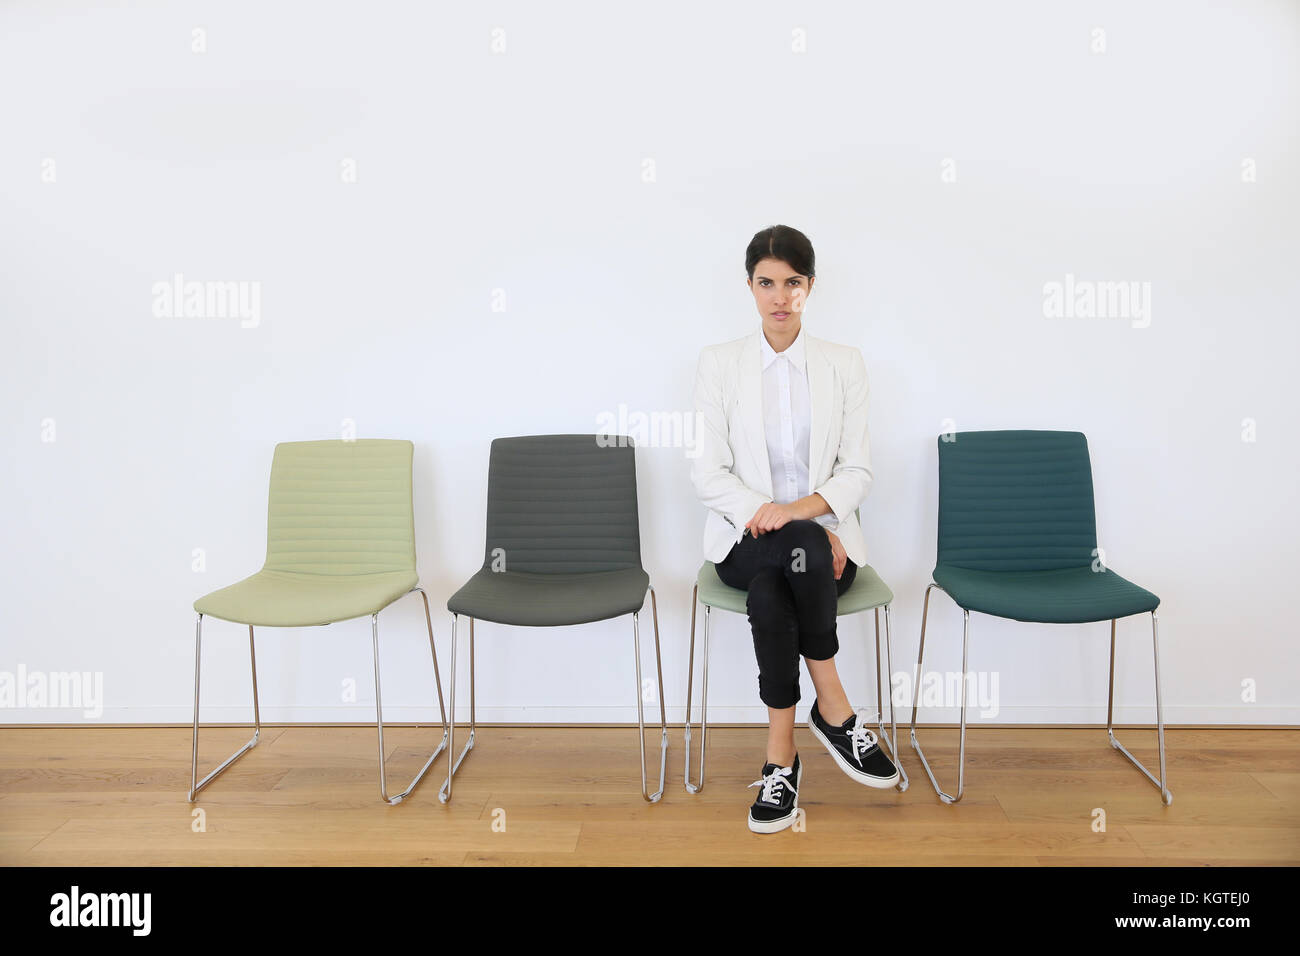 Job applicant sitting in waiting room, interview day - Stock Image